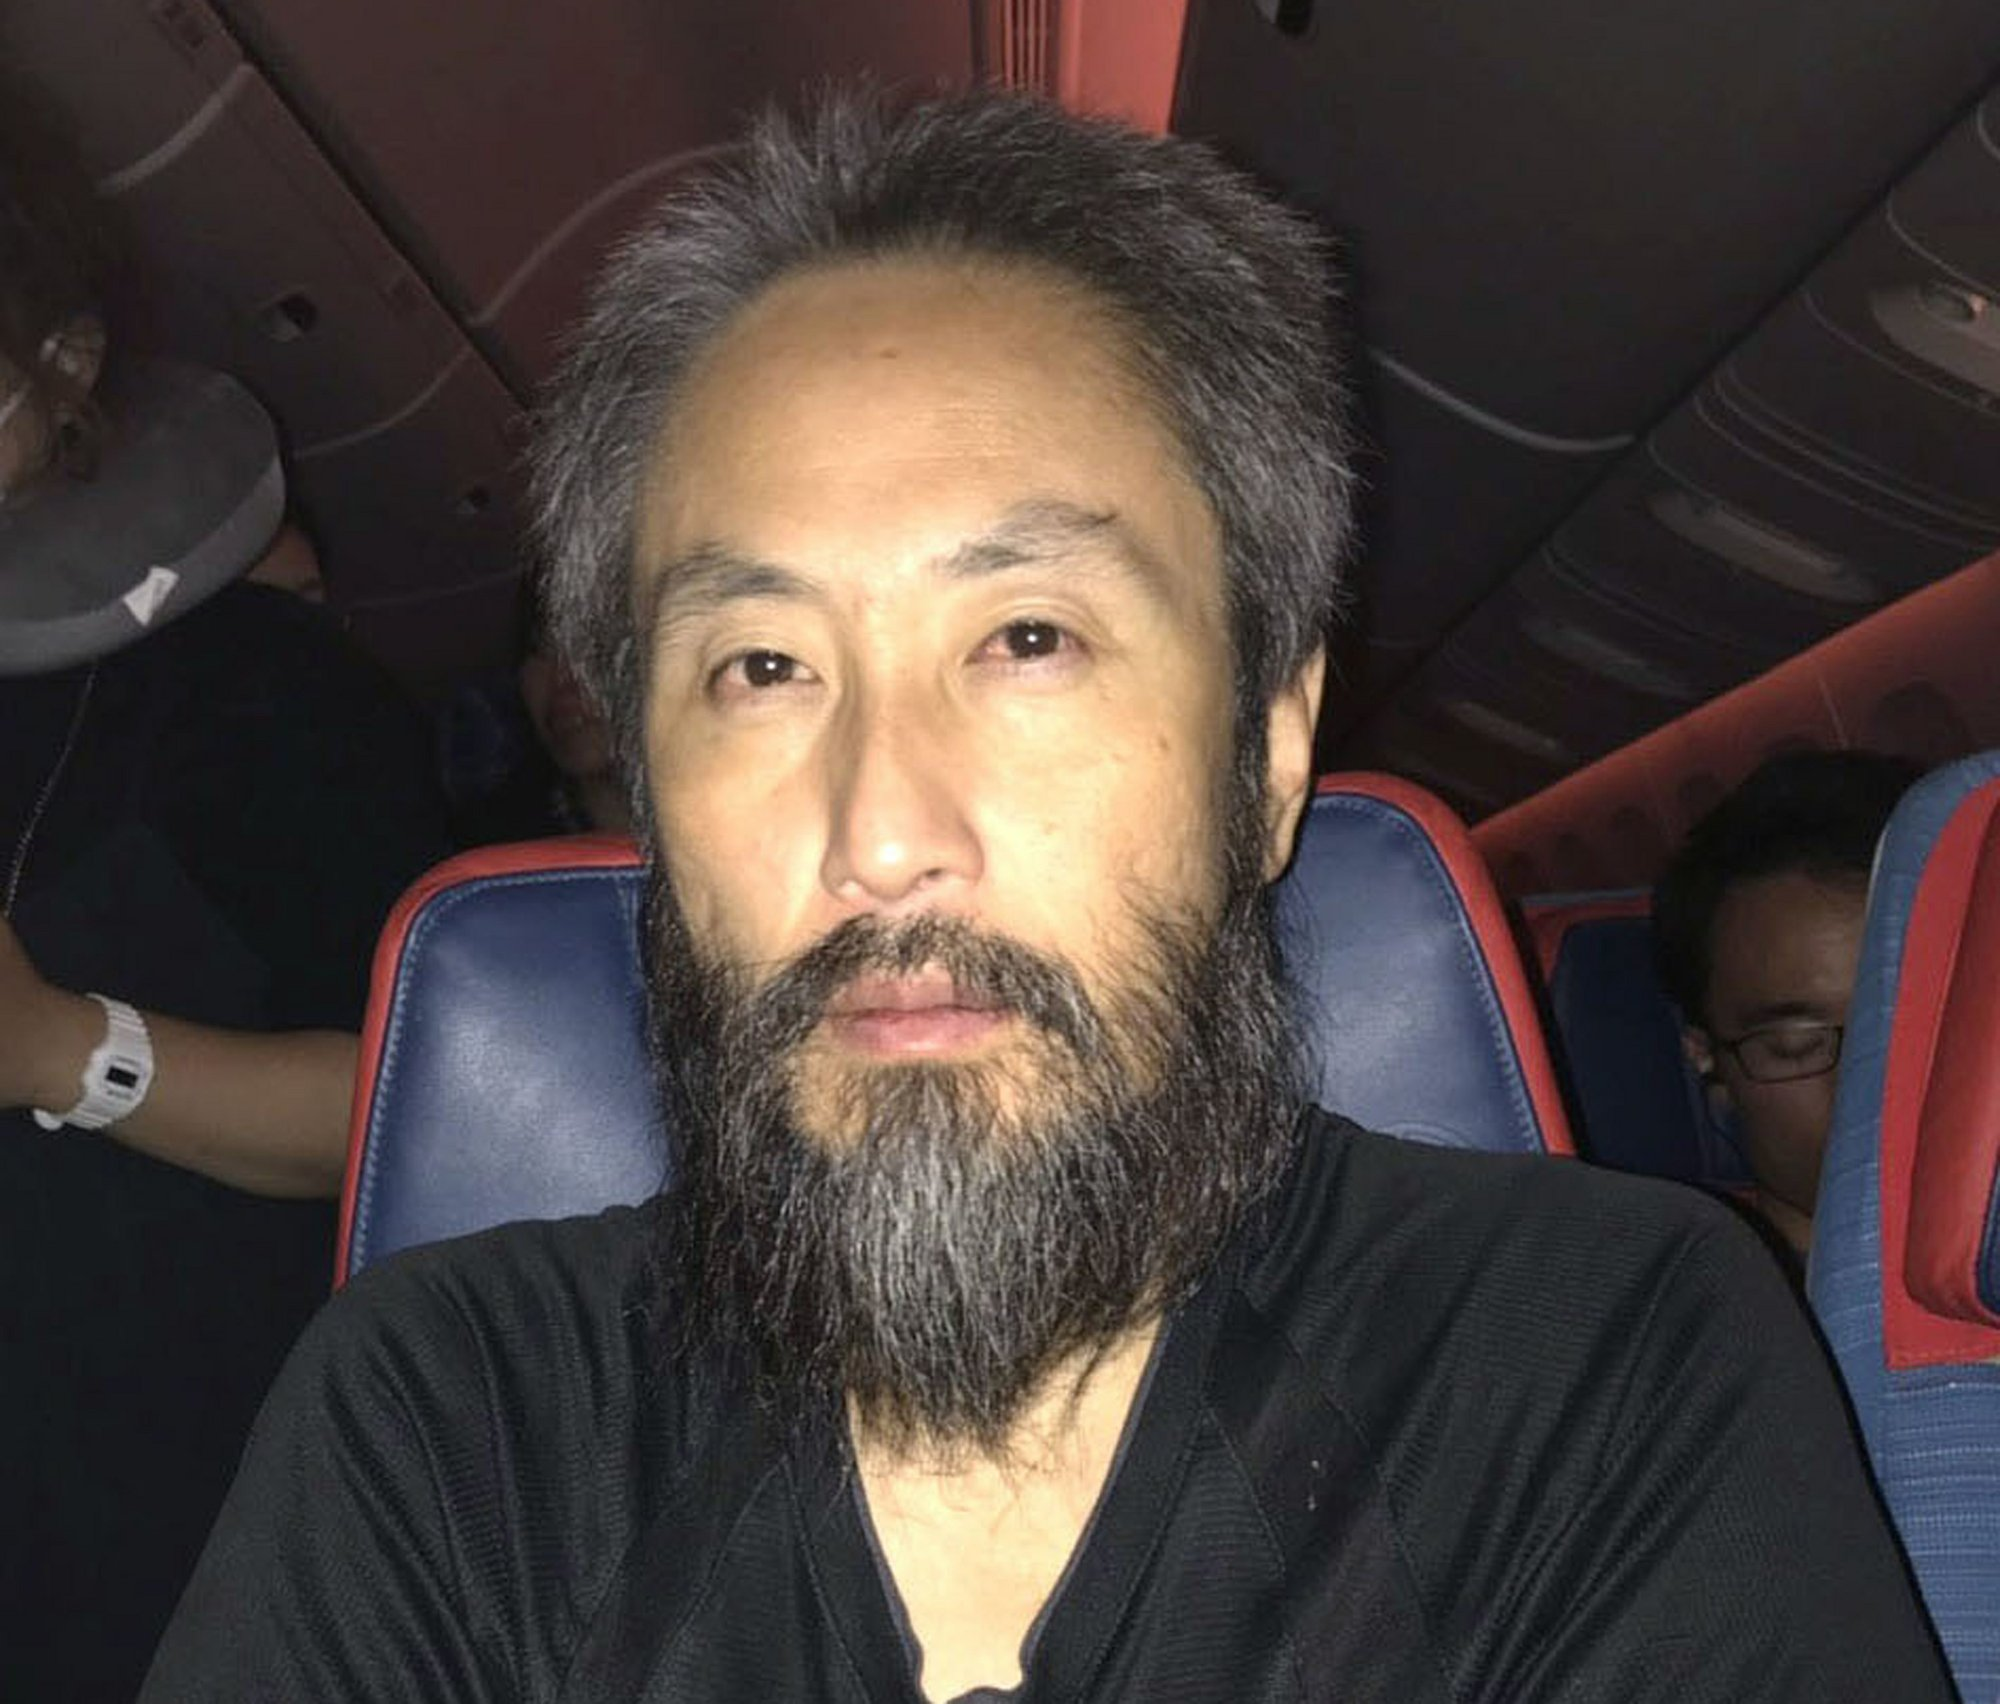 Japan reporter freed from captivity in Syria returns home